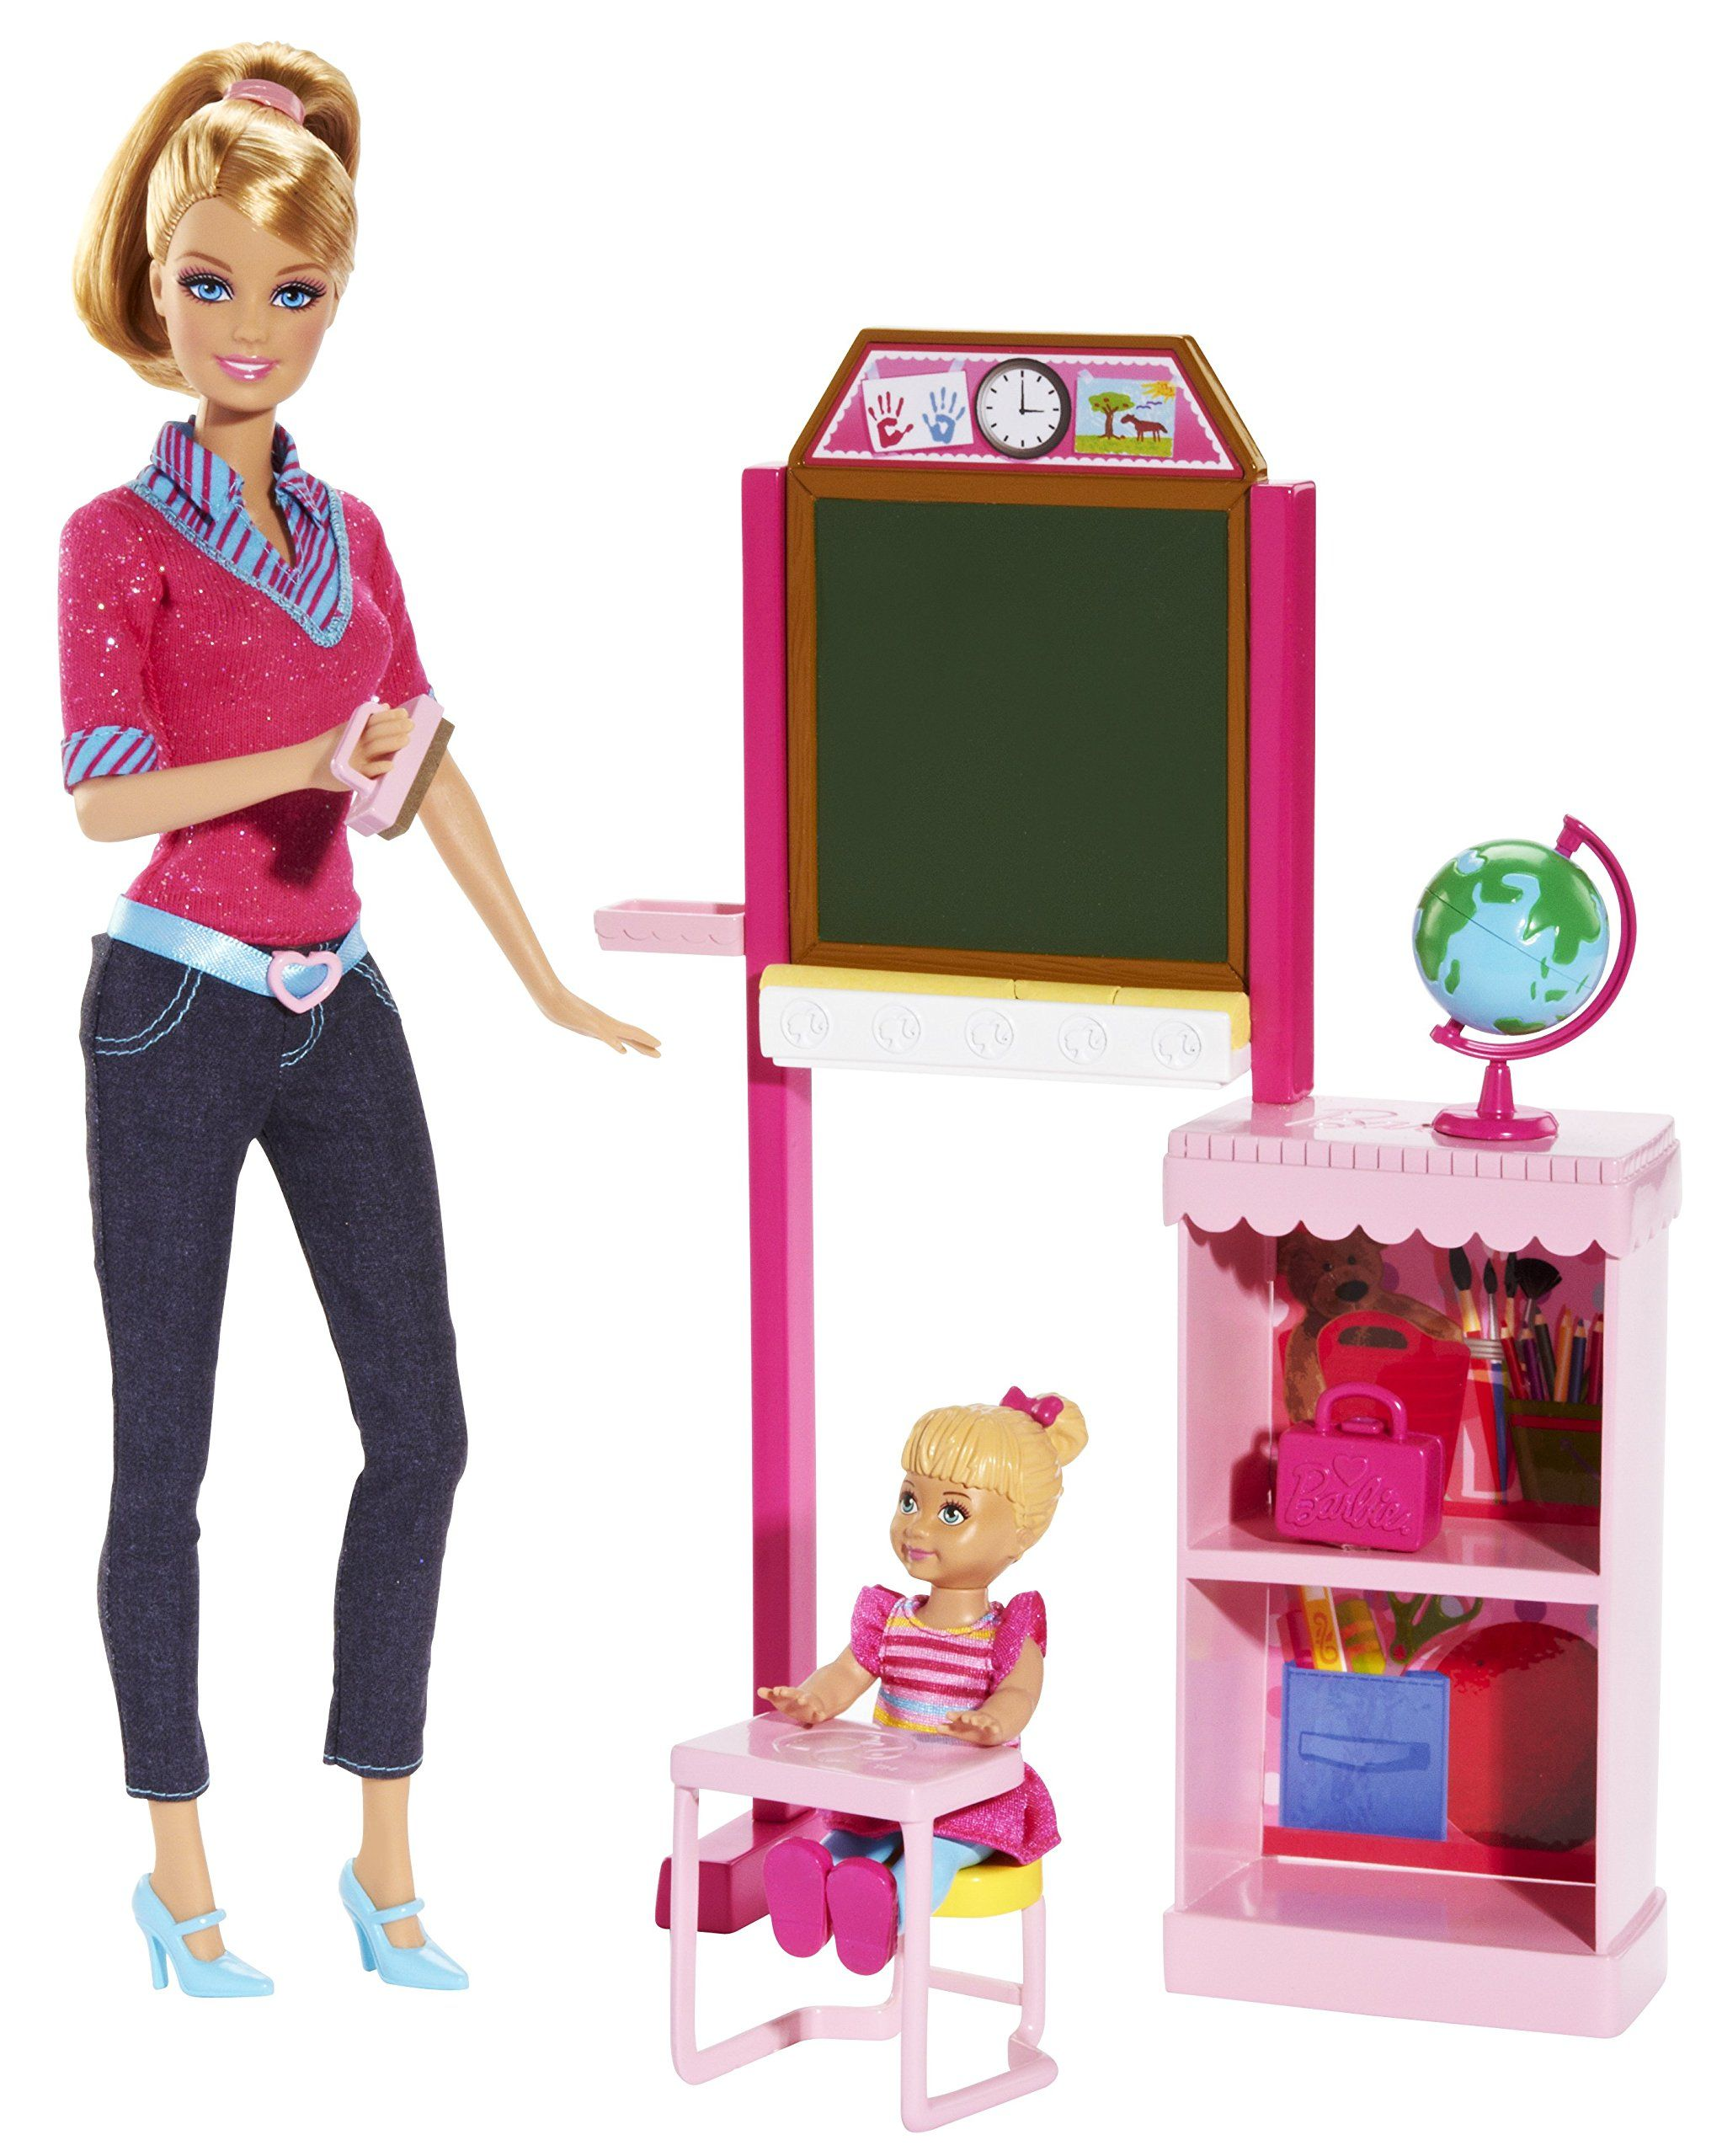 Fashion Playset Barbie Doll Collect Play Fun Barbie Career